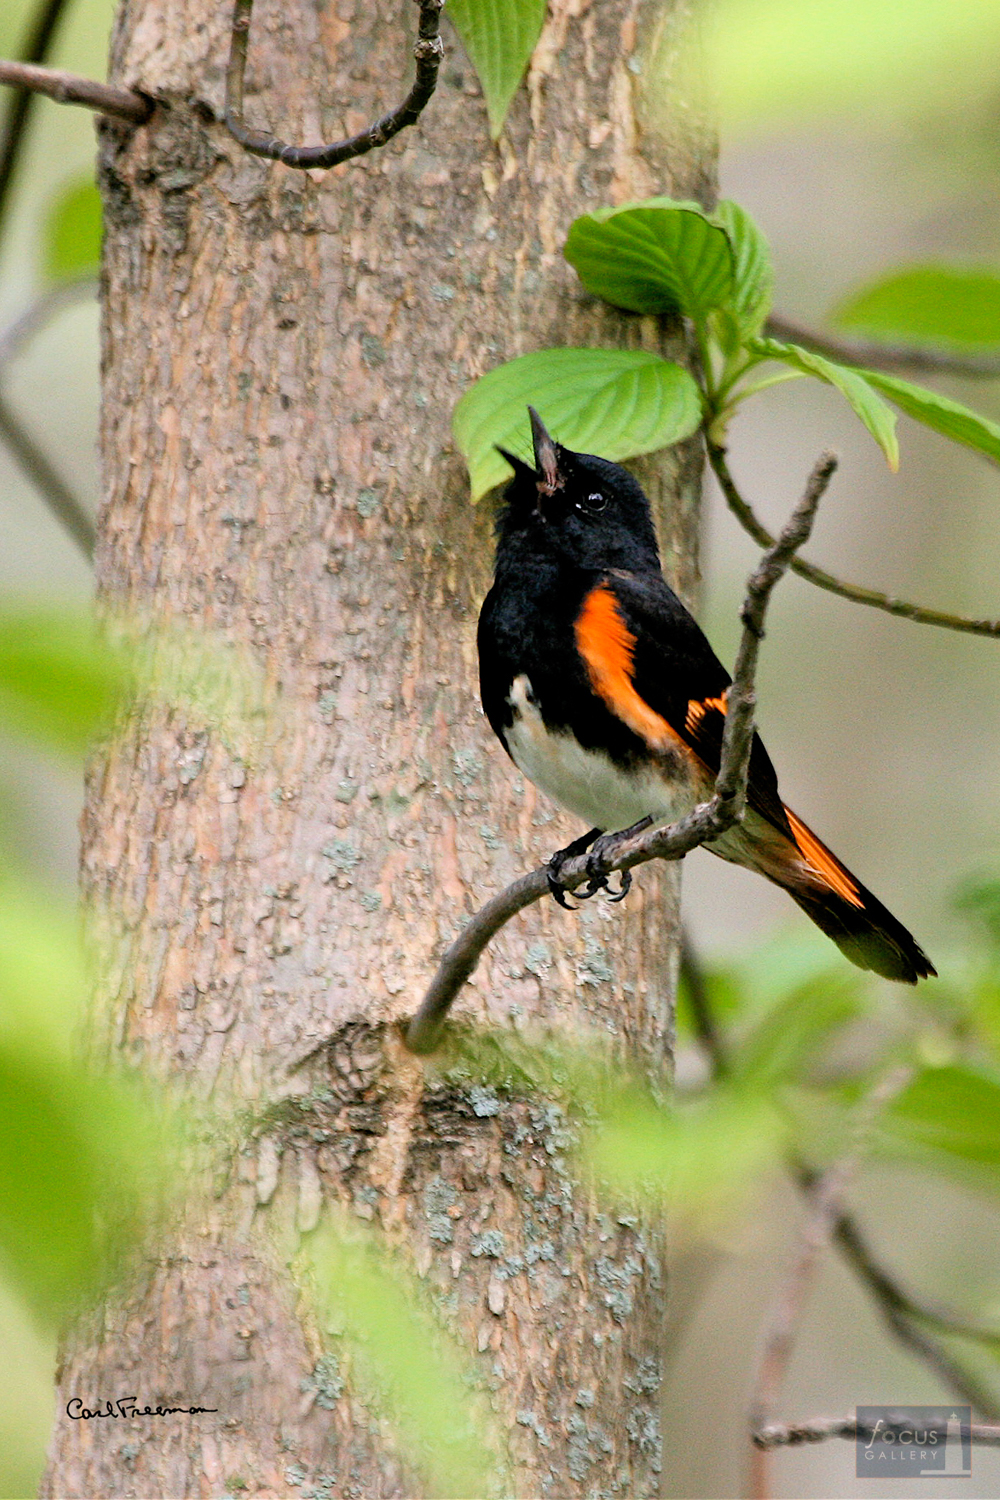 Photo © Carl Freeman This image was taken on land protected by the Grand Traverse Regional Land Conservancy (GTRLC). 5% of all...